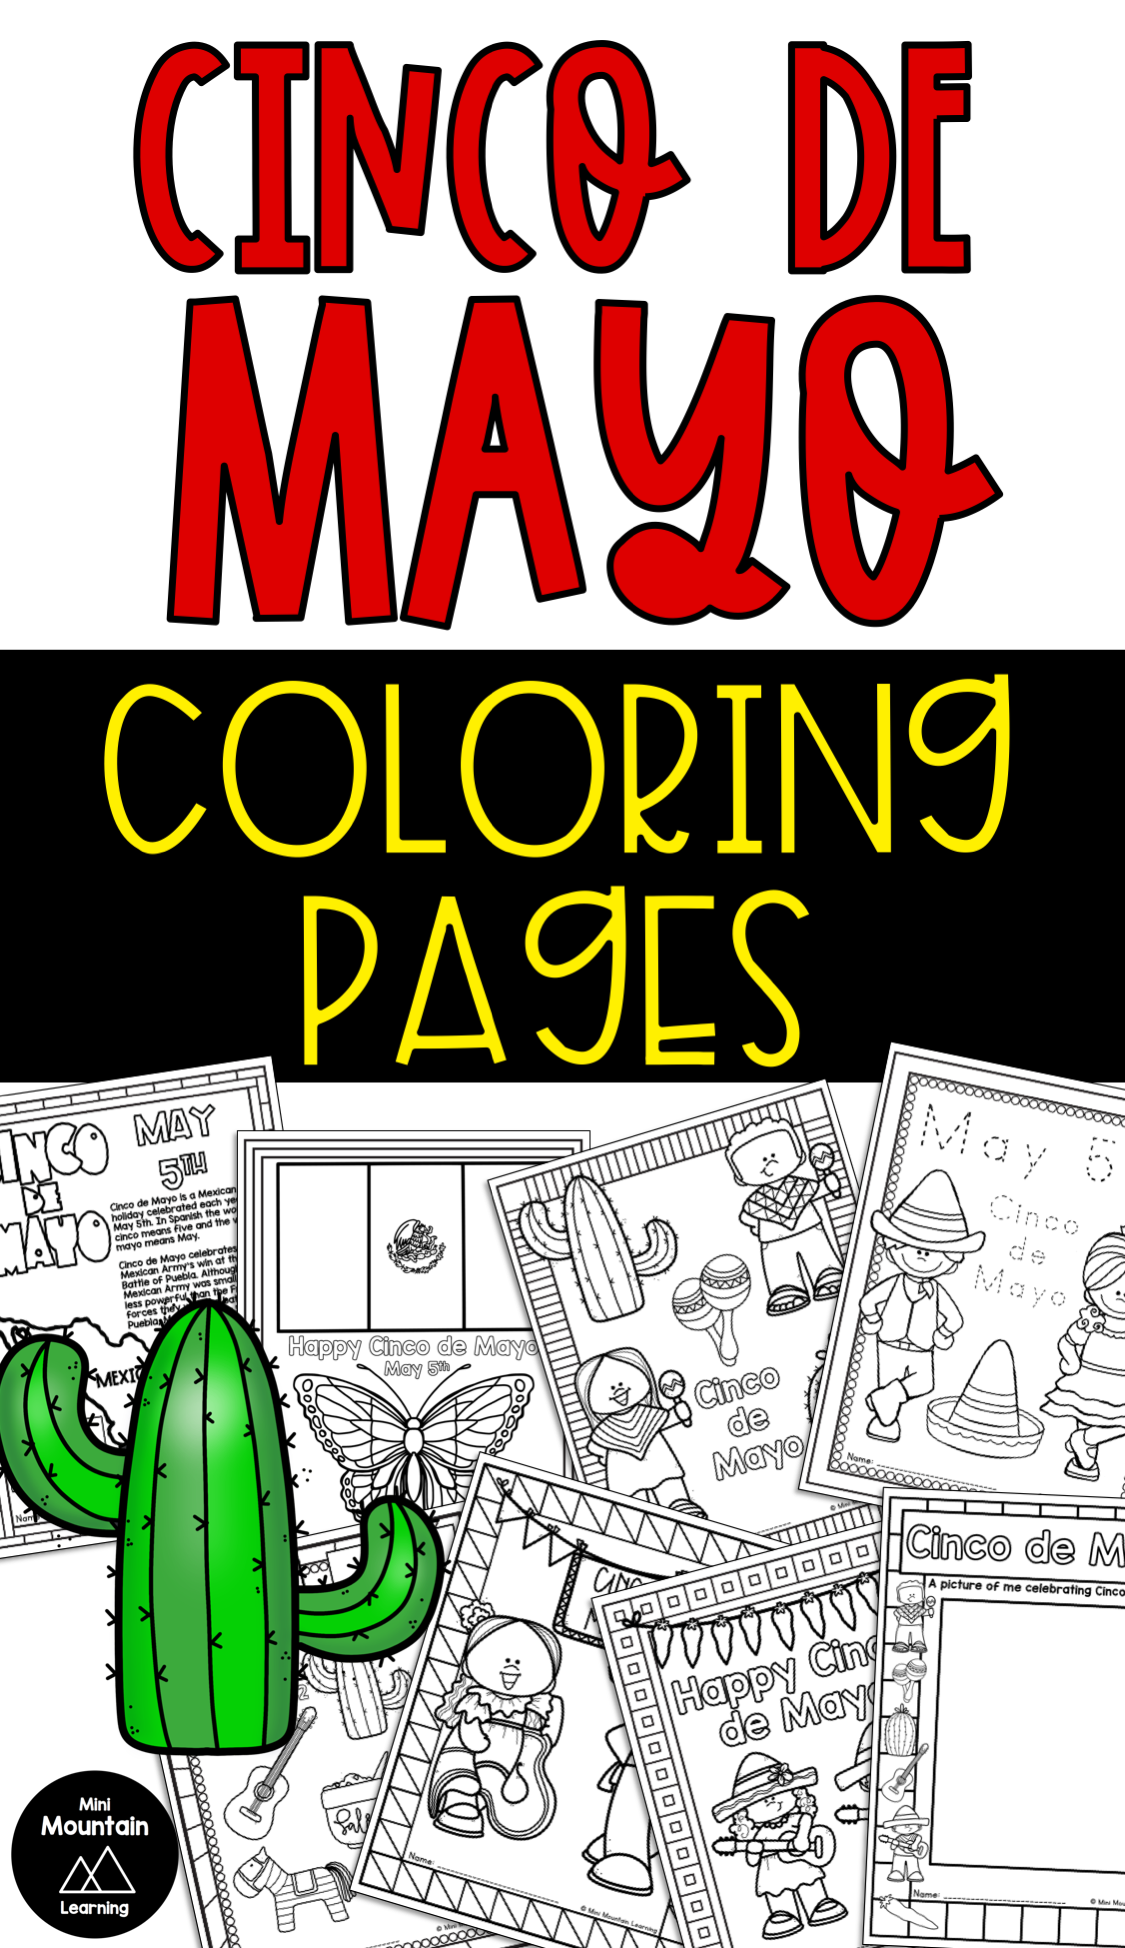 Cinco De Mayo Coloring Pages Mothers Day Coloring Pages Fathers Day Coloring Page New Year Coloring Pages [ 1948 x 1125 Pixel ]